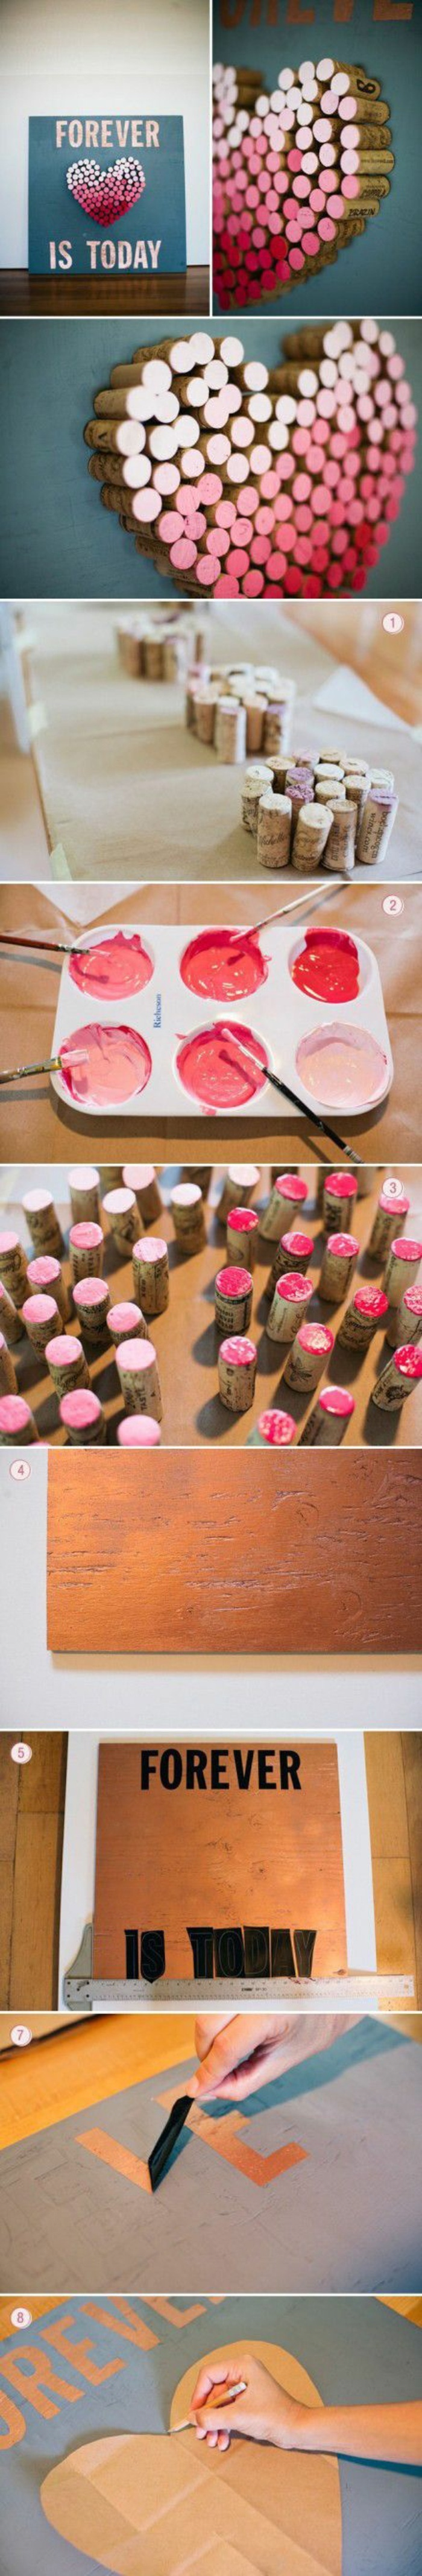 shades of pink paint, corks arranges in the shape of a heart, craft gifts, diy tutorial, step by step